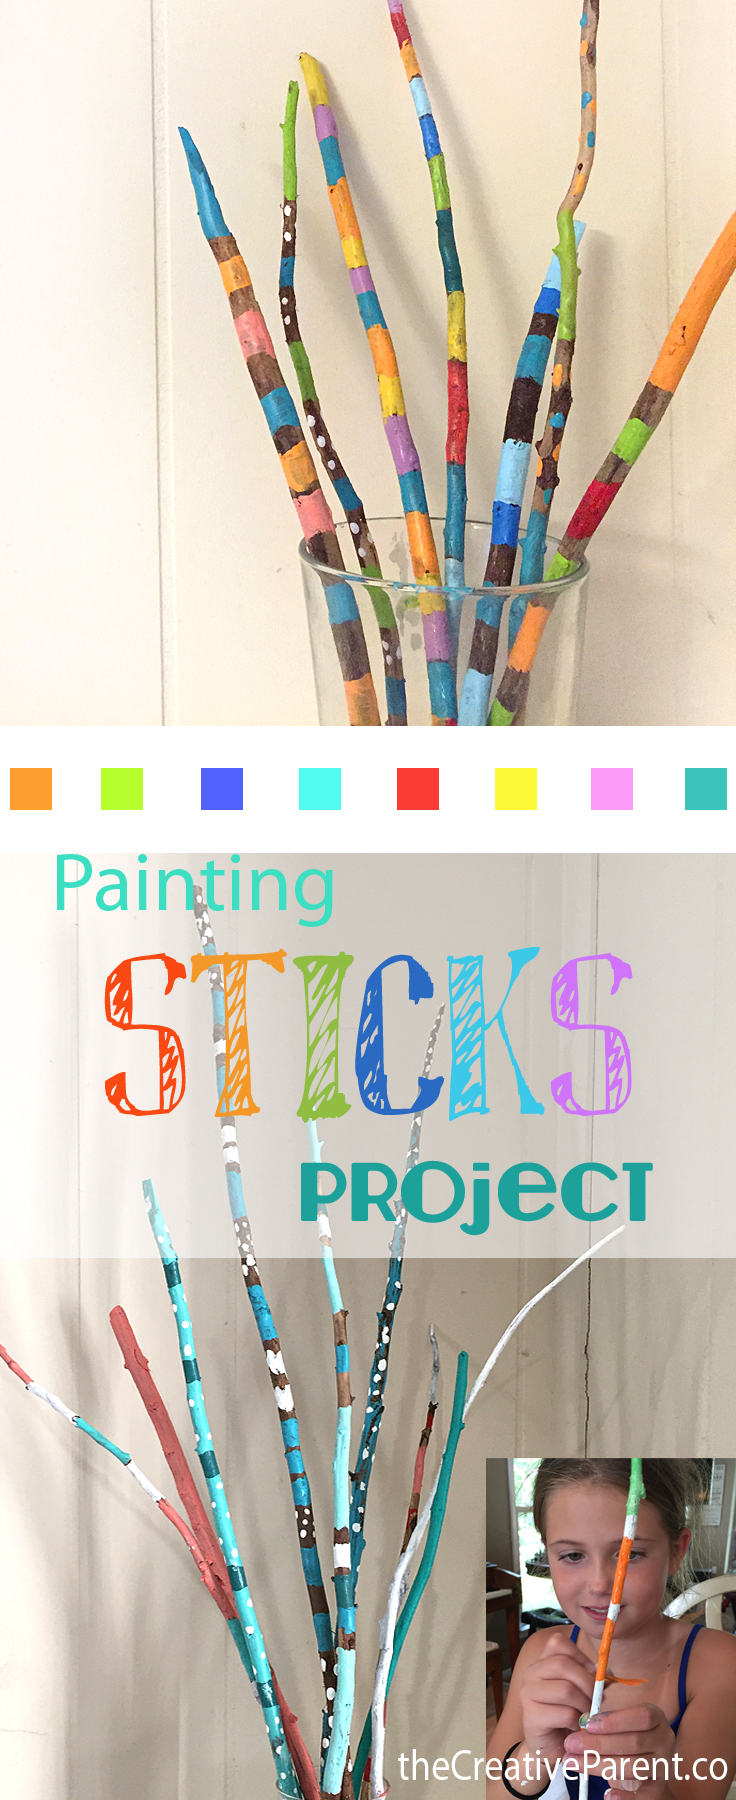 Painted sticks on Pinterest